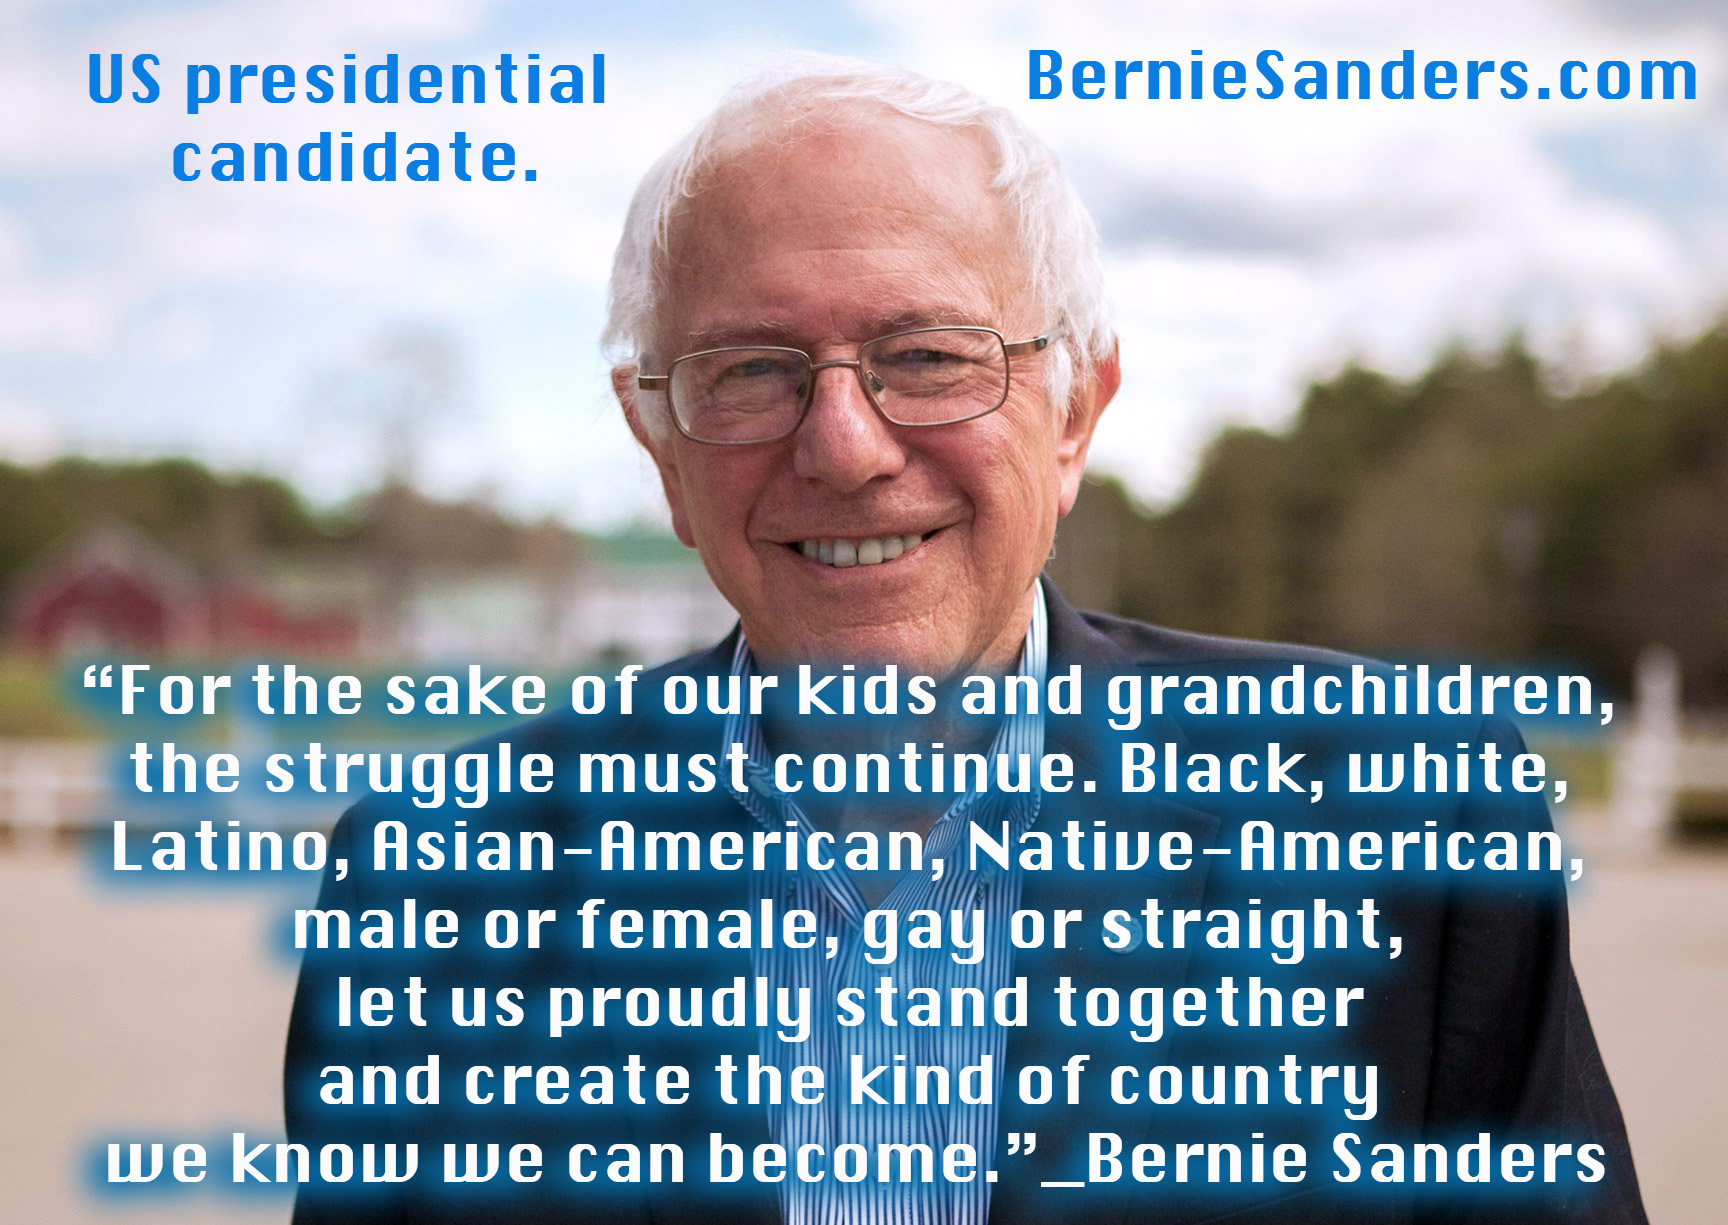 """For the sake of our kids and grandchildren,  the struggle must continue. Black, white,  Latino, Asian-American, Native-American,  male or female, gay or straight,  let us proudly stand together  and create the kind of country  we know we can become.""_Bernie Sanders  Bernie Sanders for president of the United States of America 2020. www.BernieSanders.com"